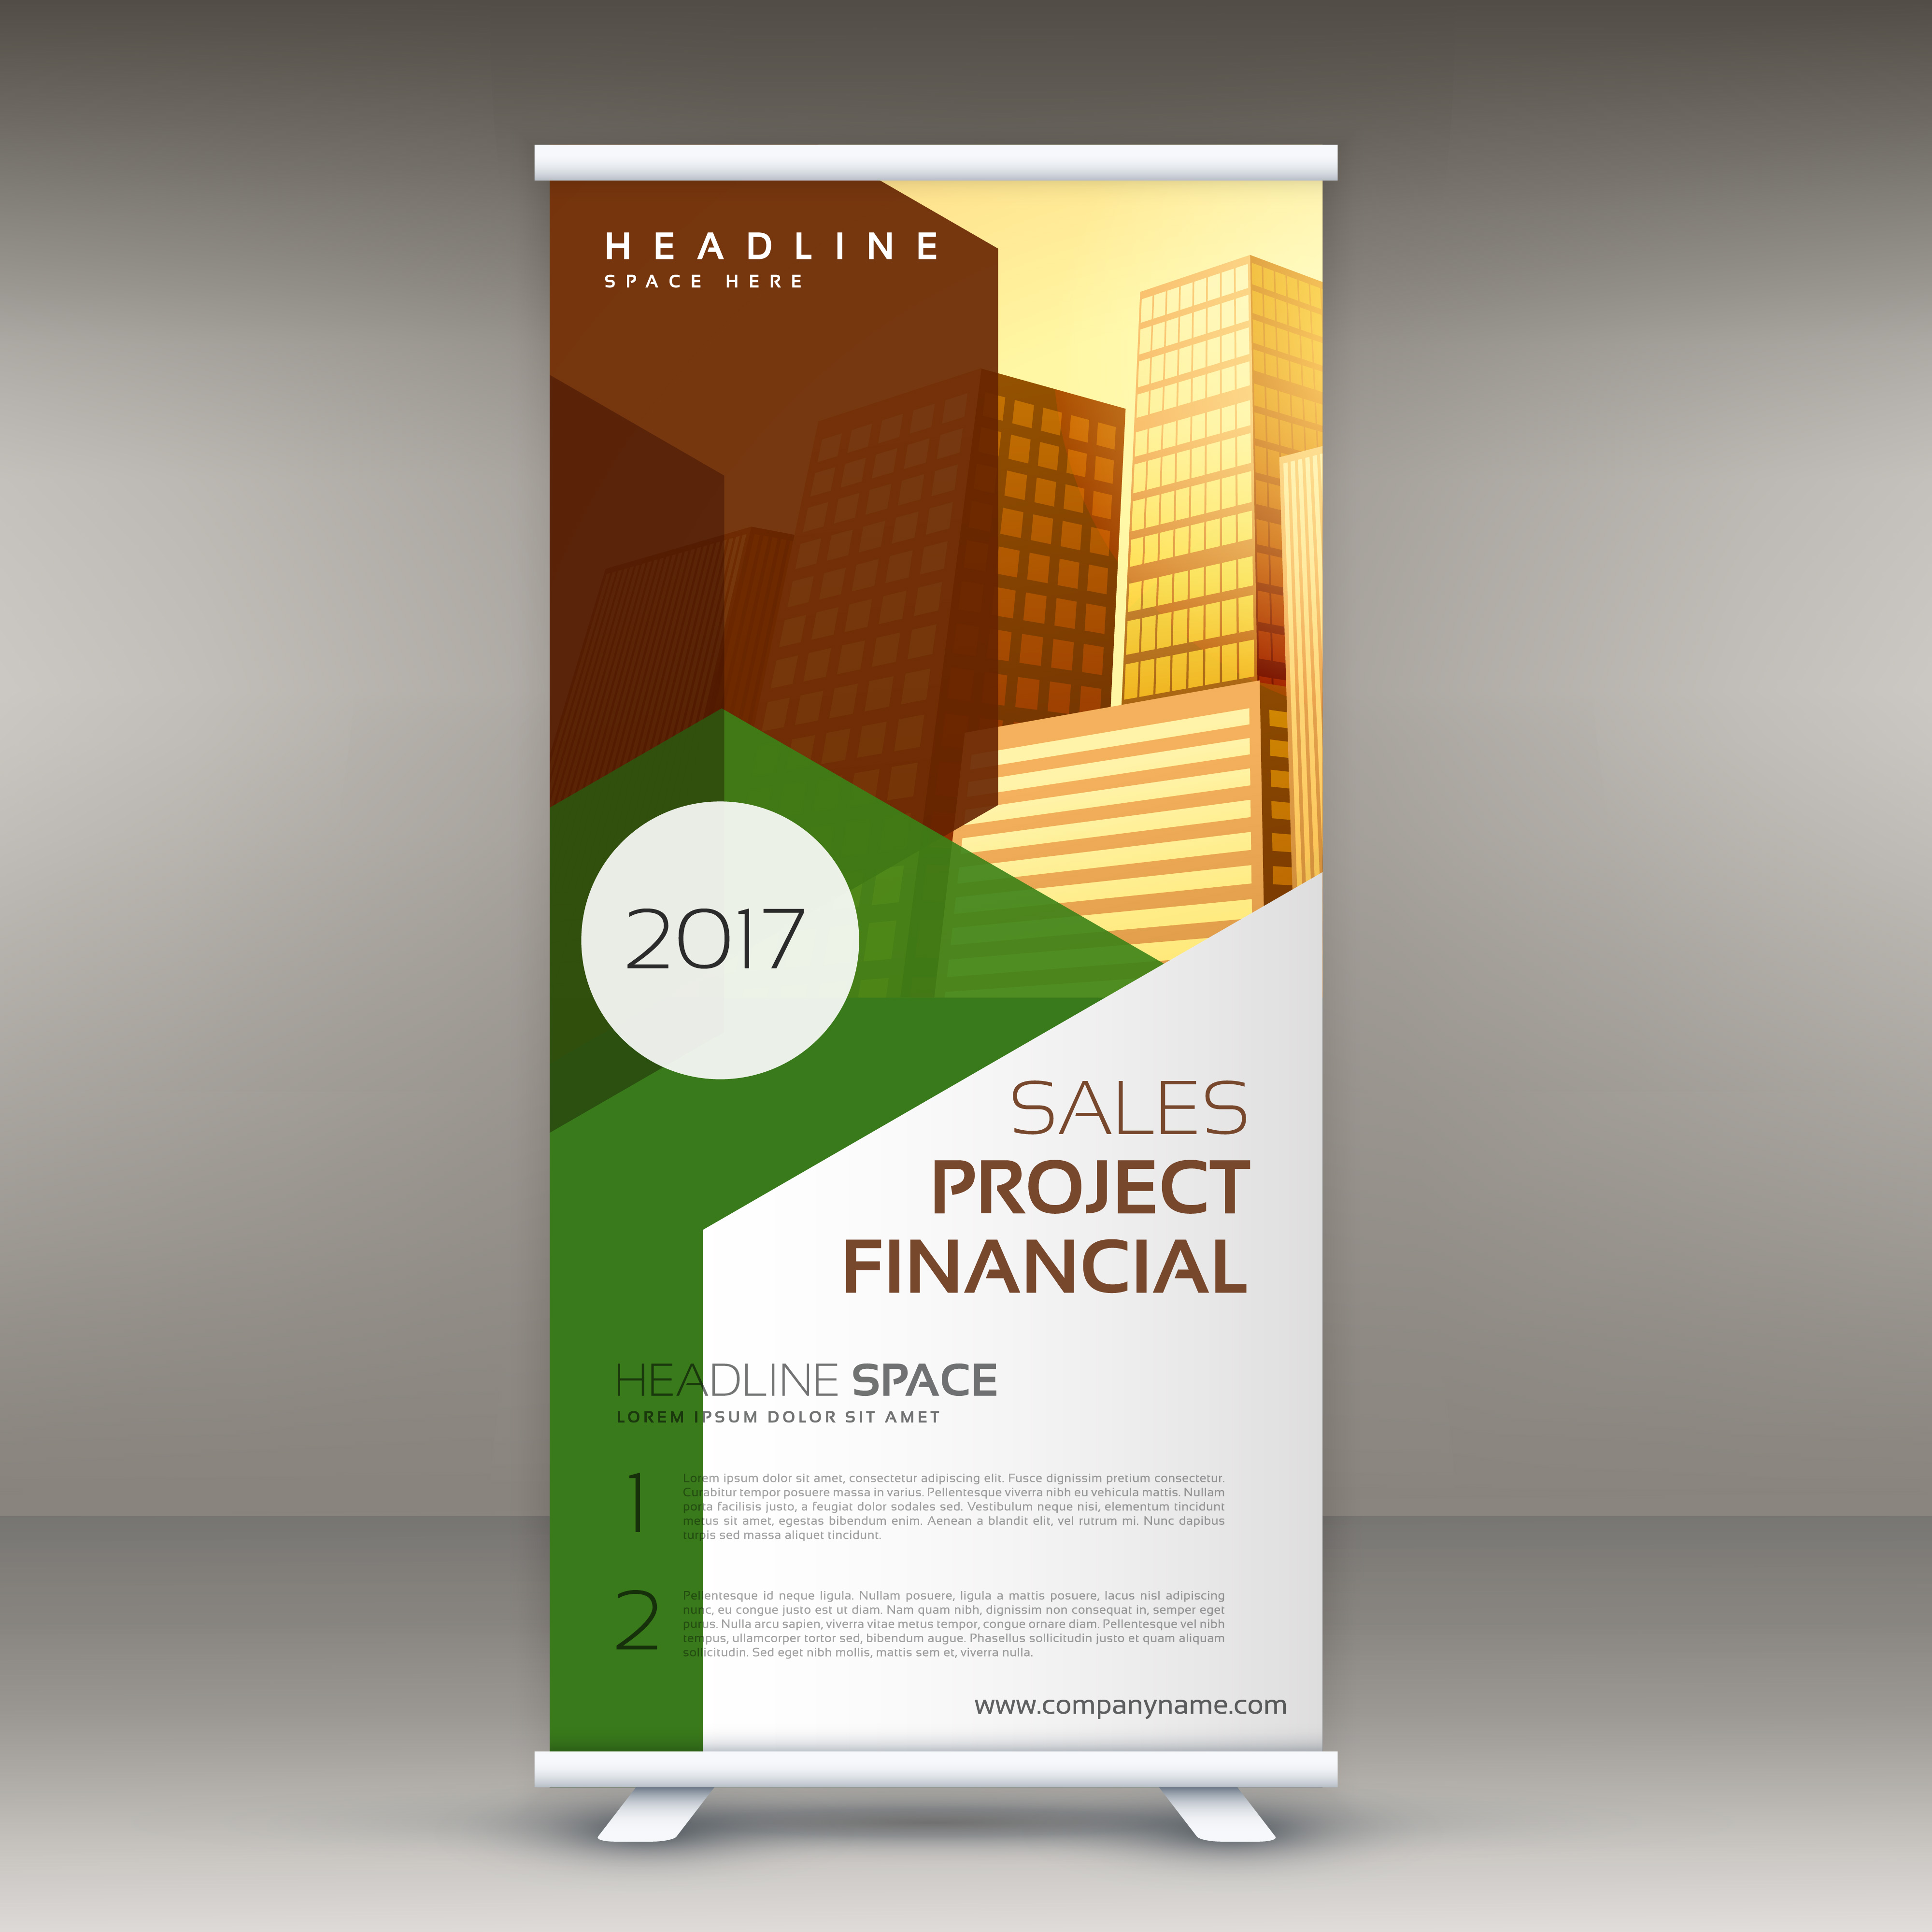 Mockup Free Flyer Rollup Design Template Vertical Standee - Download Free